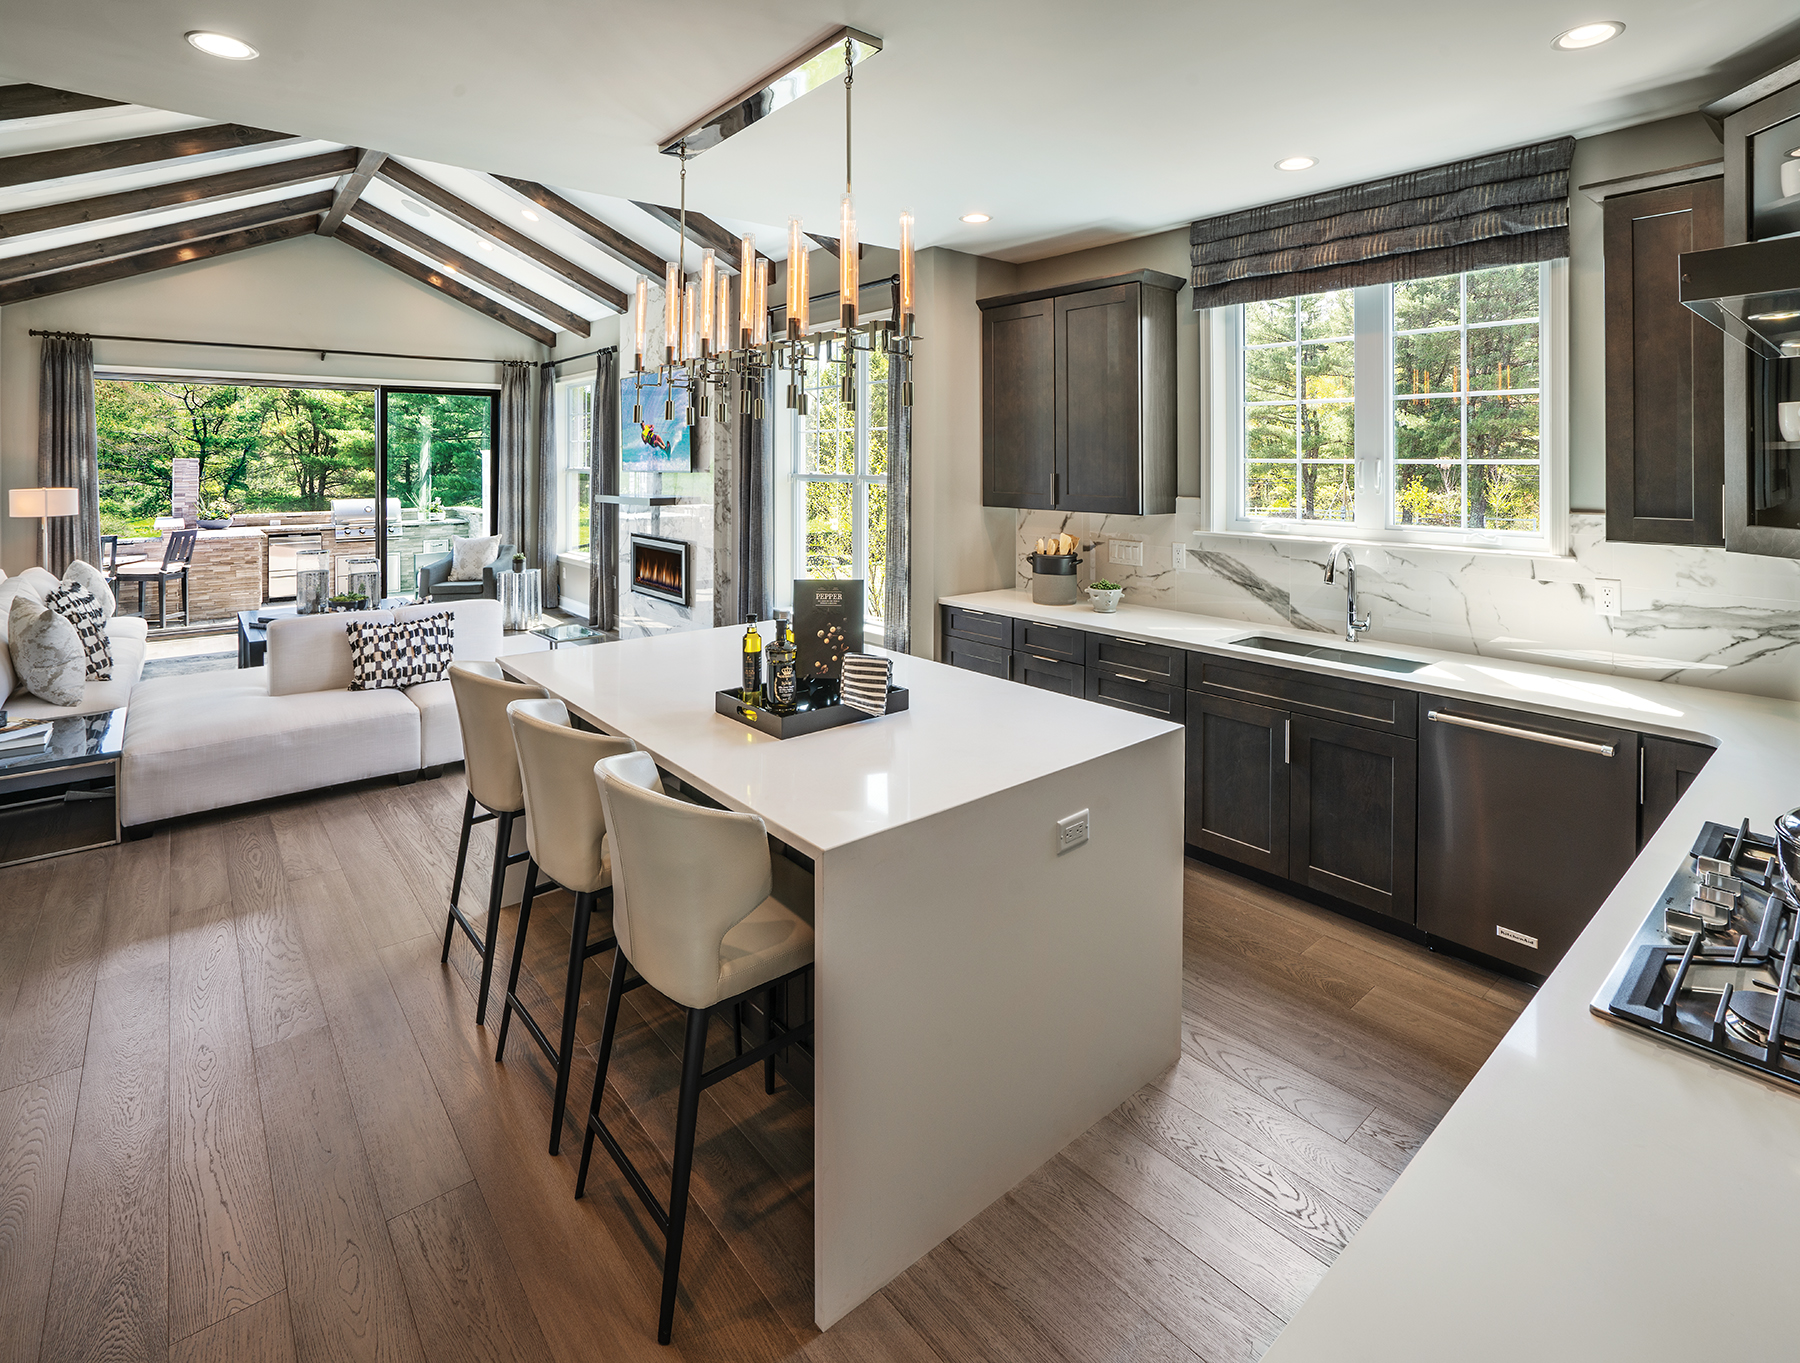 Kitchen In The Barron Model At The Regency At Glen Ellen In Millis, MA